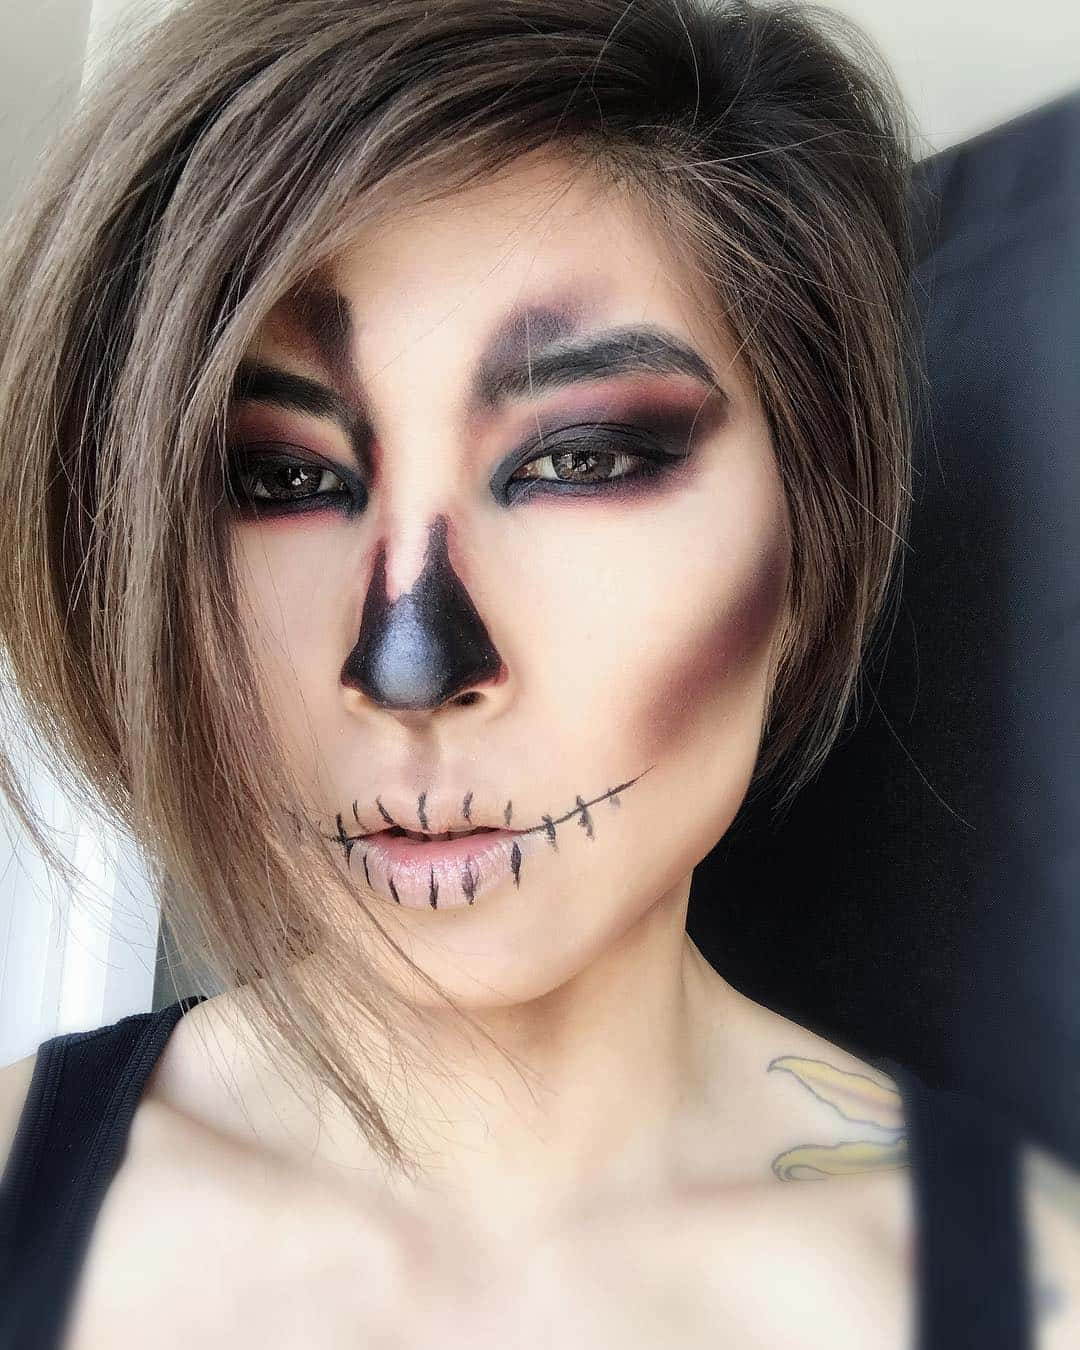 halloween makeup ideas 27 and spooky makeup ideas ritely 12907